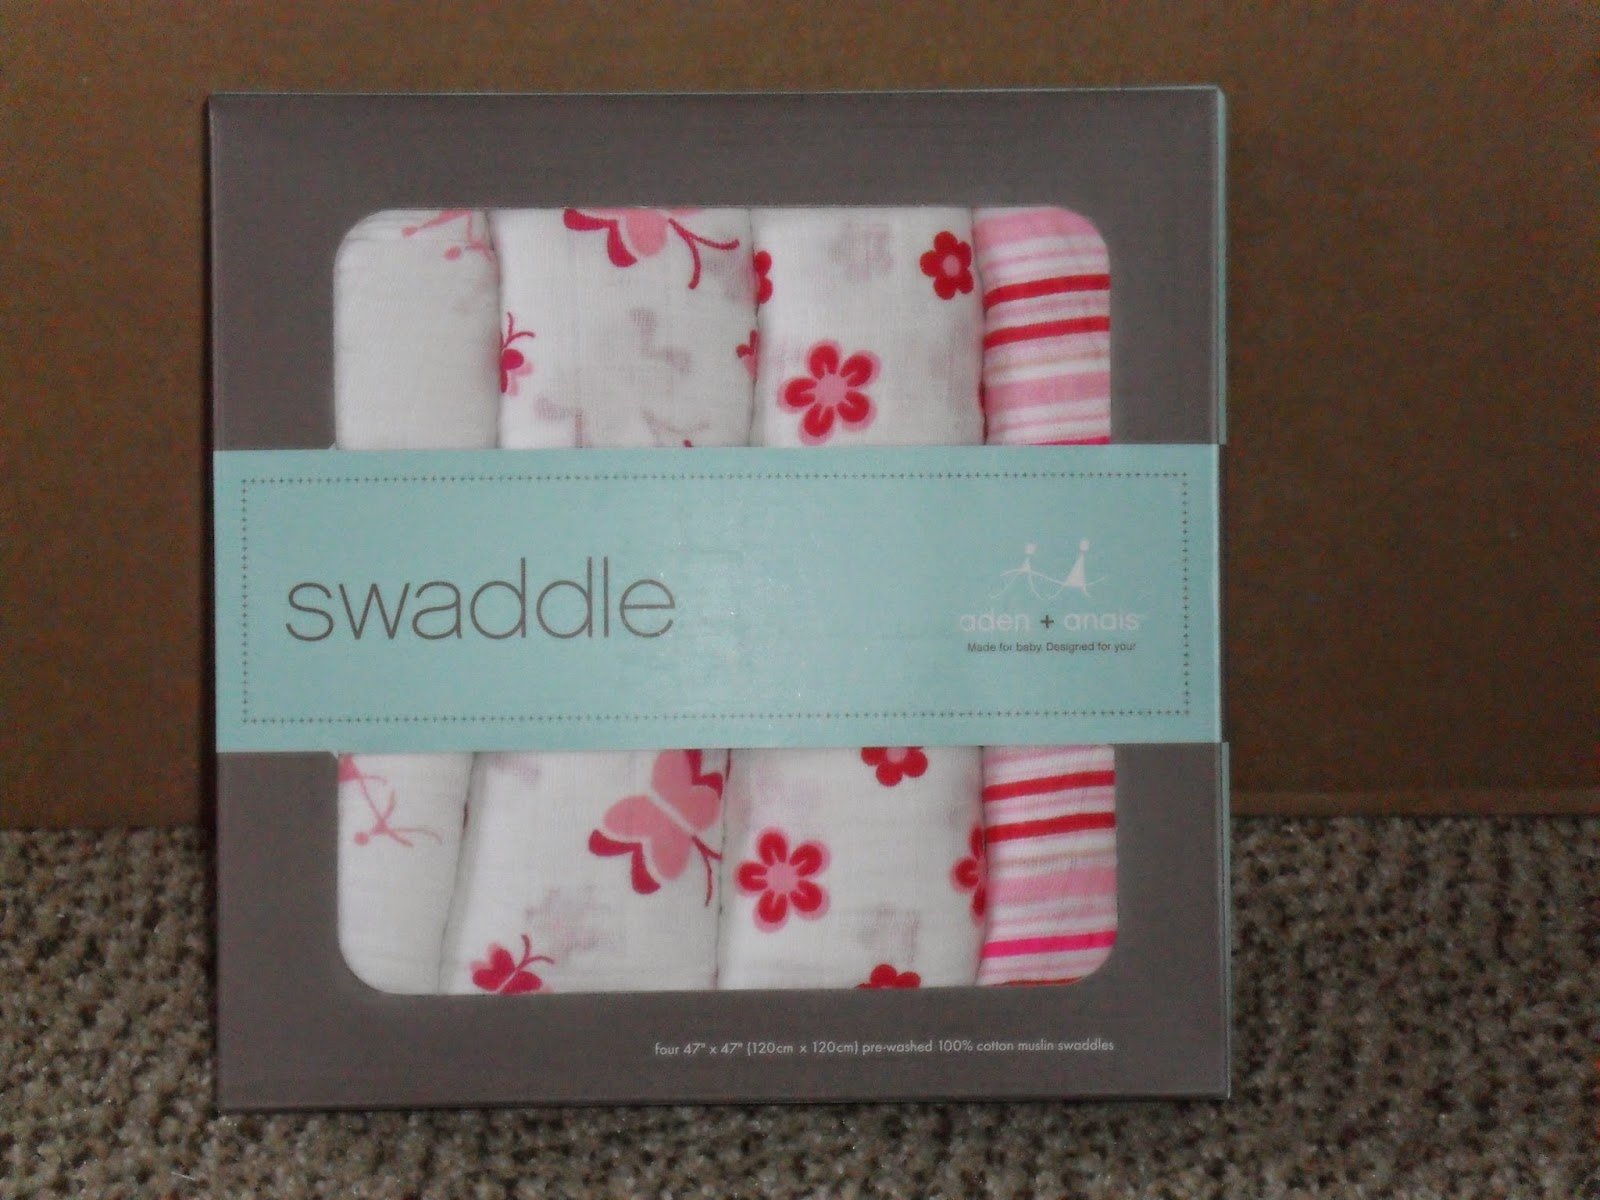 Swaddle Me. Aden+Anais Review (Blu me away or Pink of me Event)Swaddle Me. Aden+Anais Review (Blu me away or Pink of me Event)